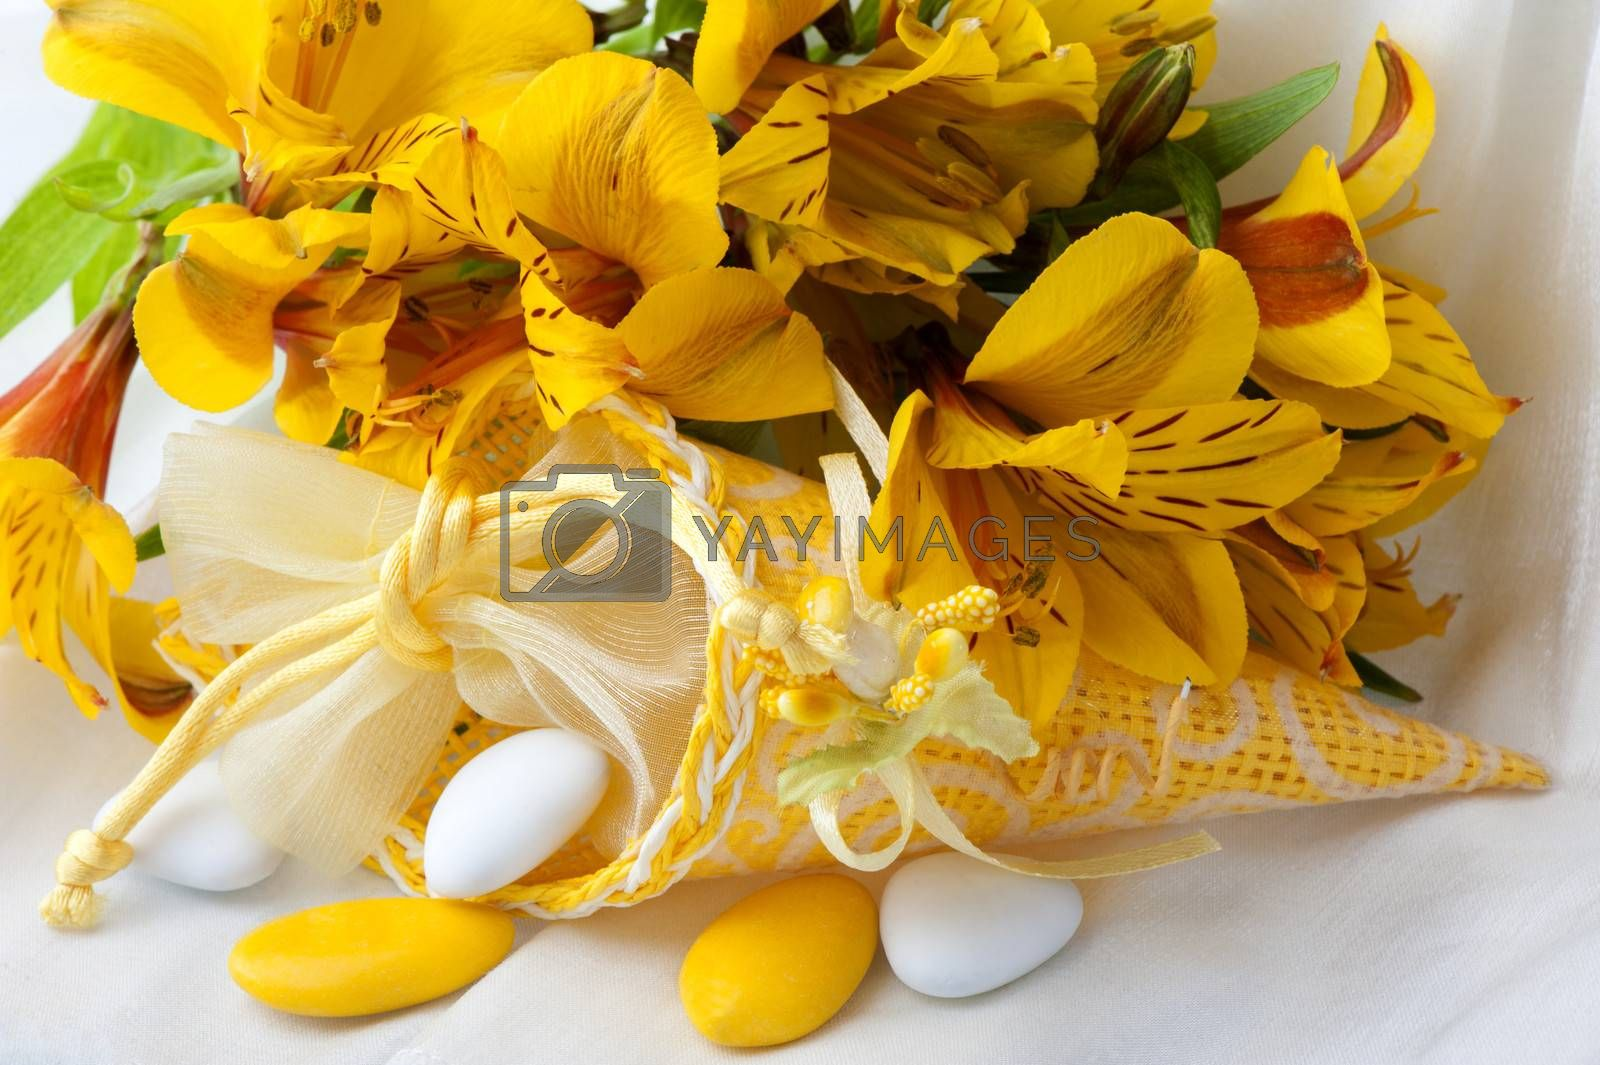 flowers candy and weddings favors on white background